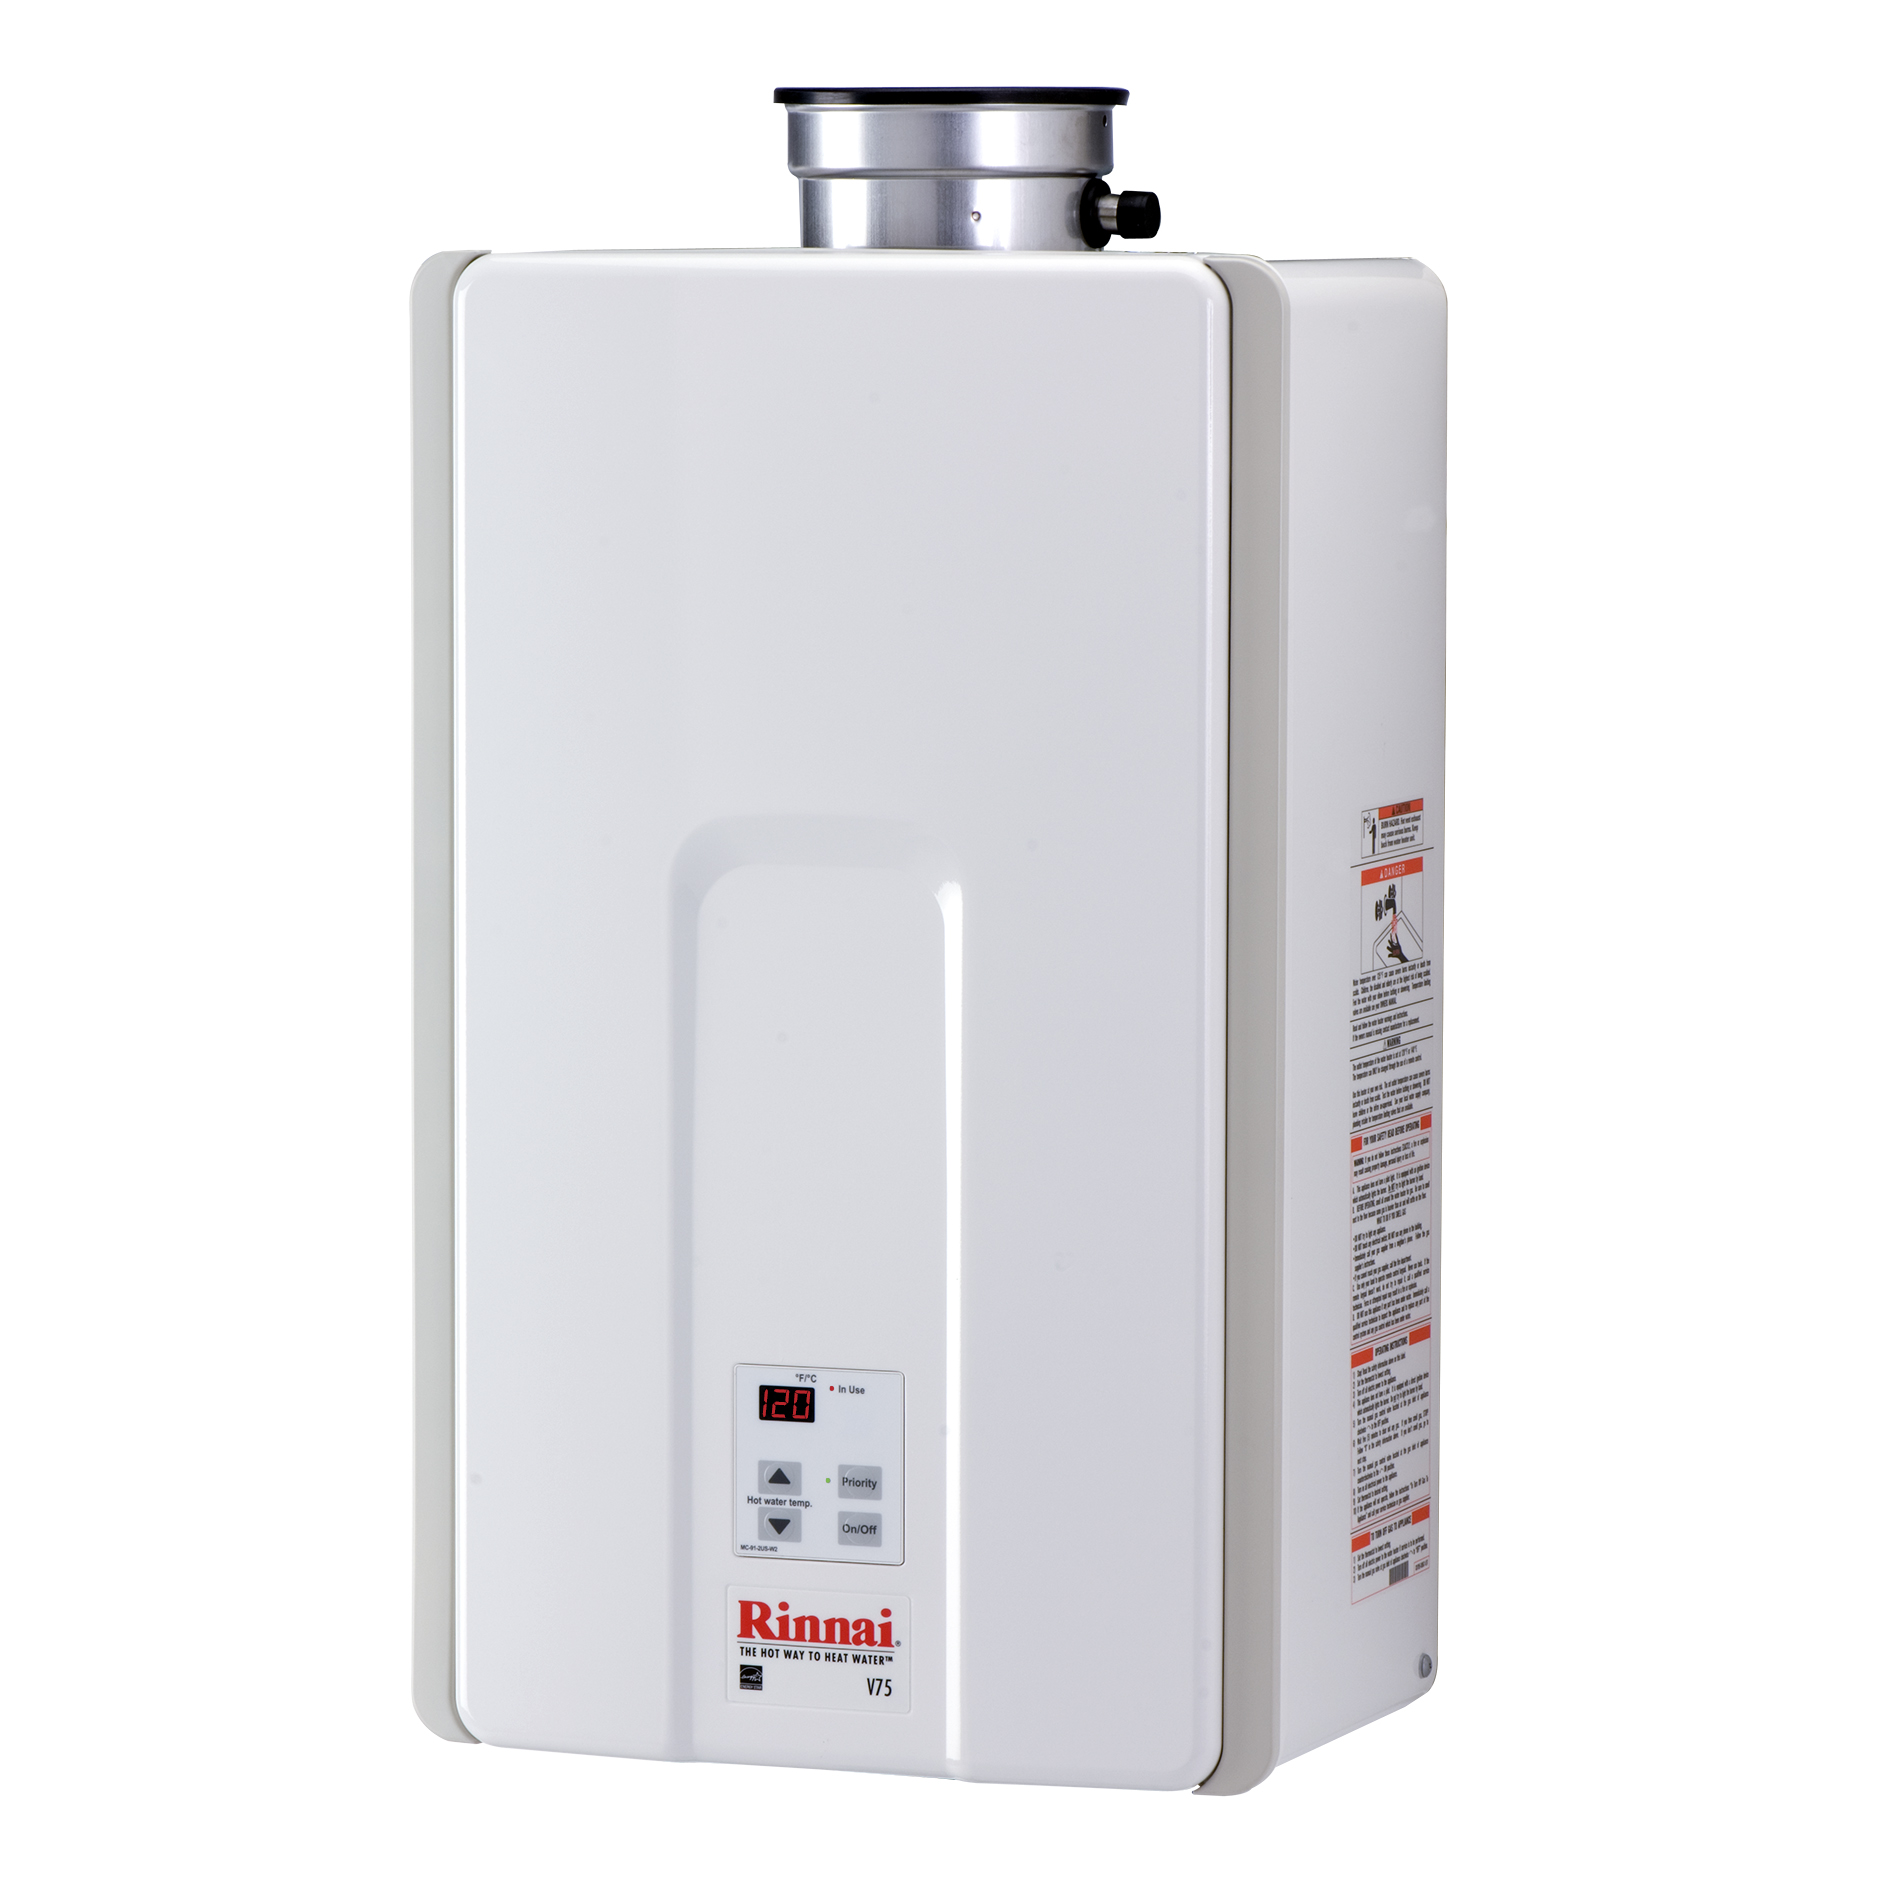 Rinnai V75i High Efficiency Non-Condensing, 7.5 GPM Tankless Hot Water Heater for Indoor Installation